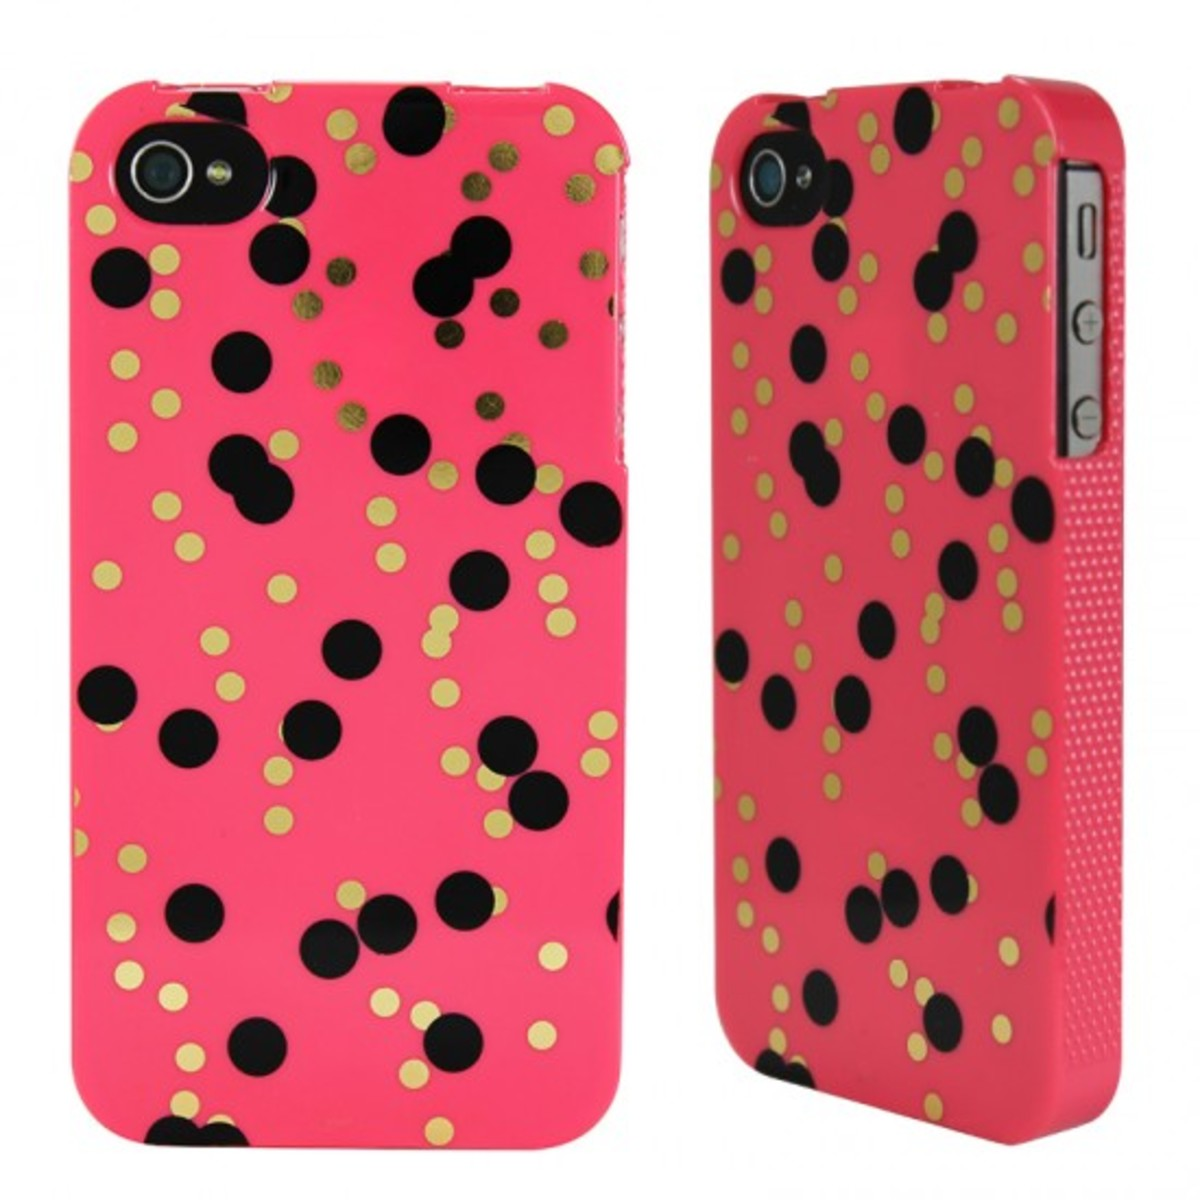 Stylish Cell Phone Cases